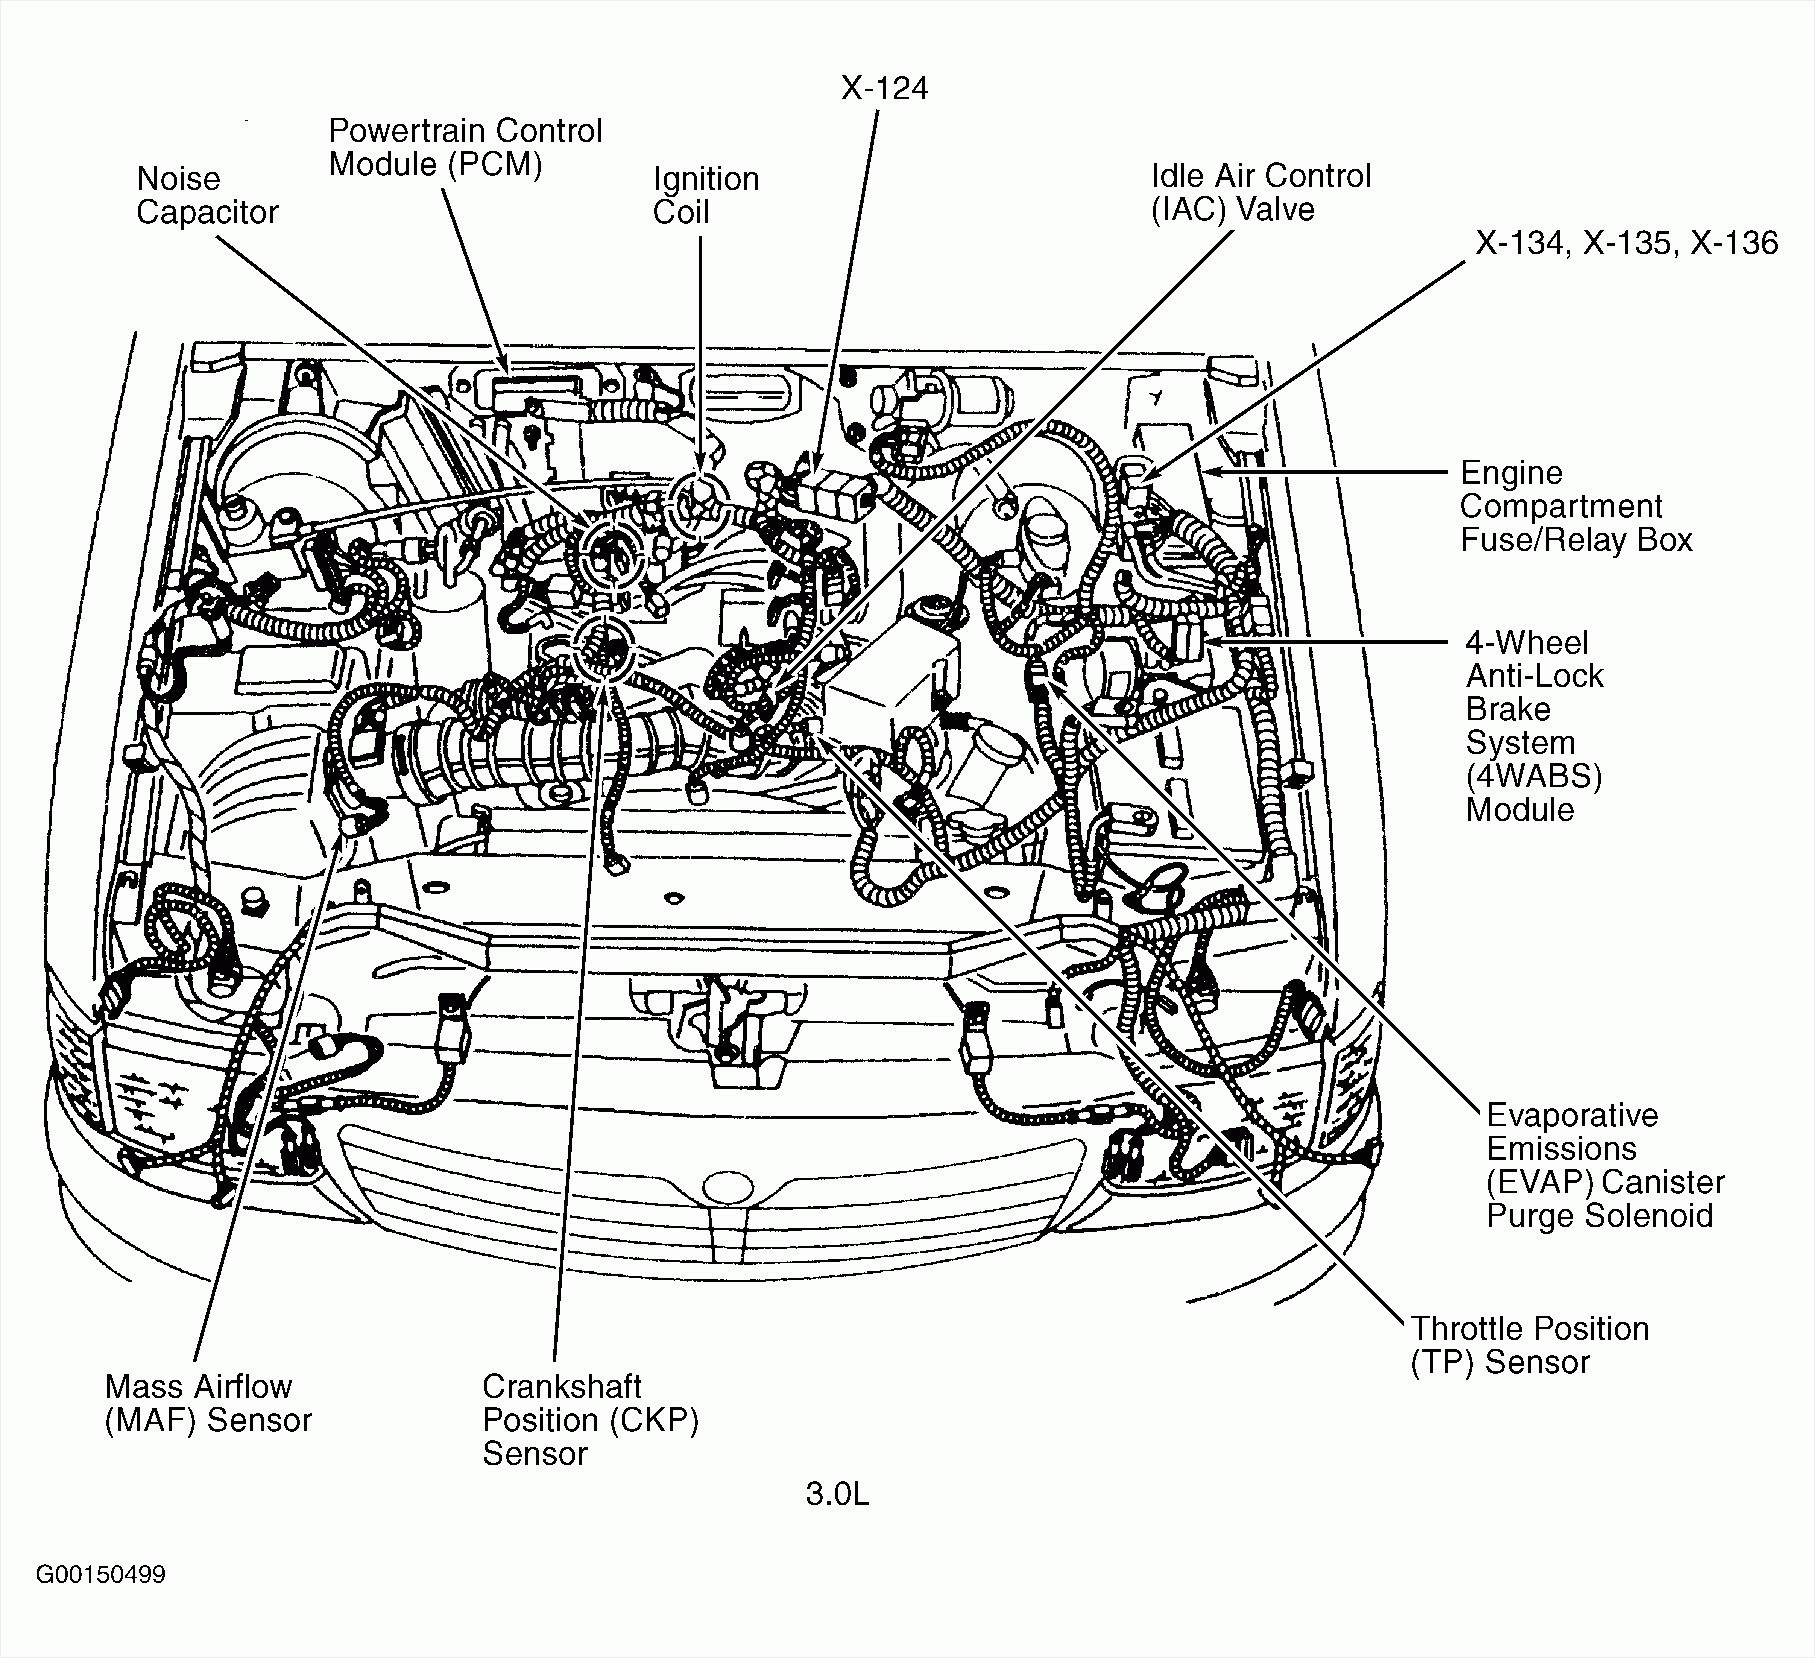 96 Toyotum T100 Engine Diagram - Wiring Diagram Networks